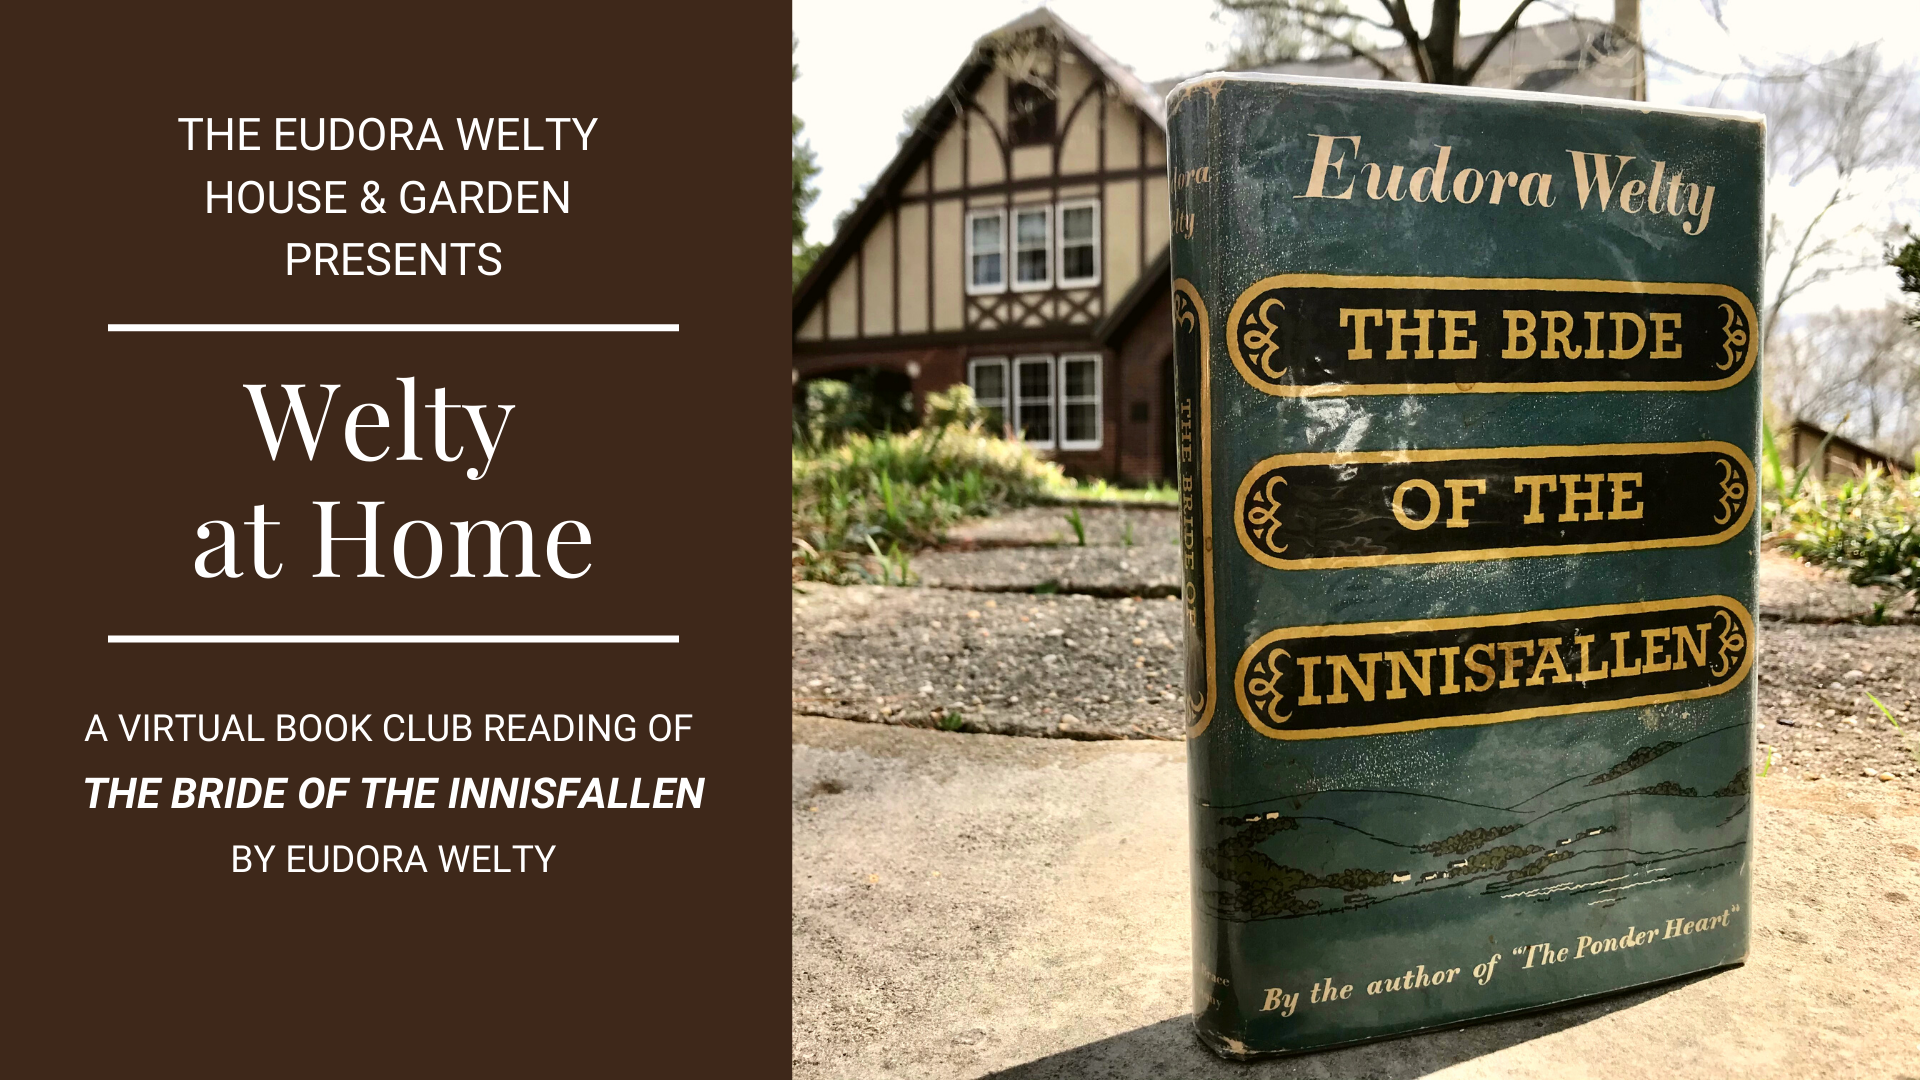 Our Welty at Home Virtual Book Club pick is The Bride of the Innisfallen, by Eudora Welty